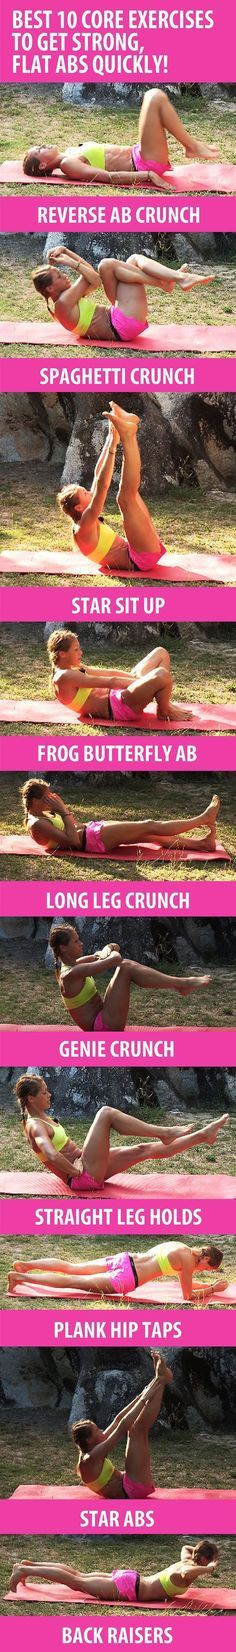 These 10 core exercises will help you sculpt six-pack abs, build core strength, and get rid of belly fat quickly. Recommended reps: BEGINNERS INTERMEDIATE ADVANCED Lose weight while you sleep Great Ab Workouts, Lower Ab Workouts, At Home Workouts, Core Workouts, Sport Fitness, Health Fitness, Workout Fitness, Fitness Diet, Fitness Shirts